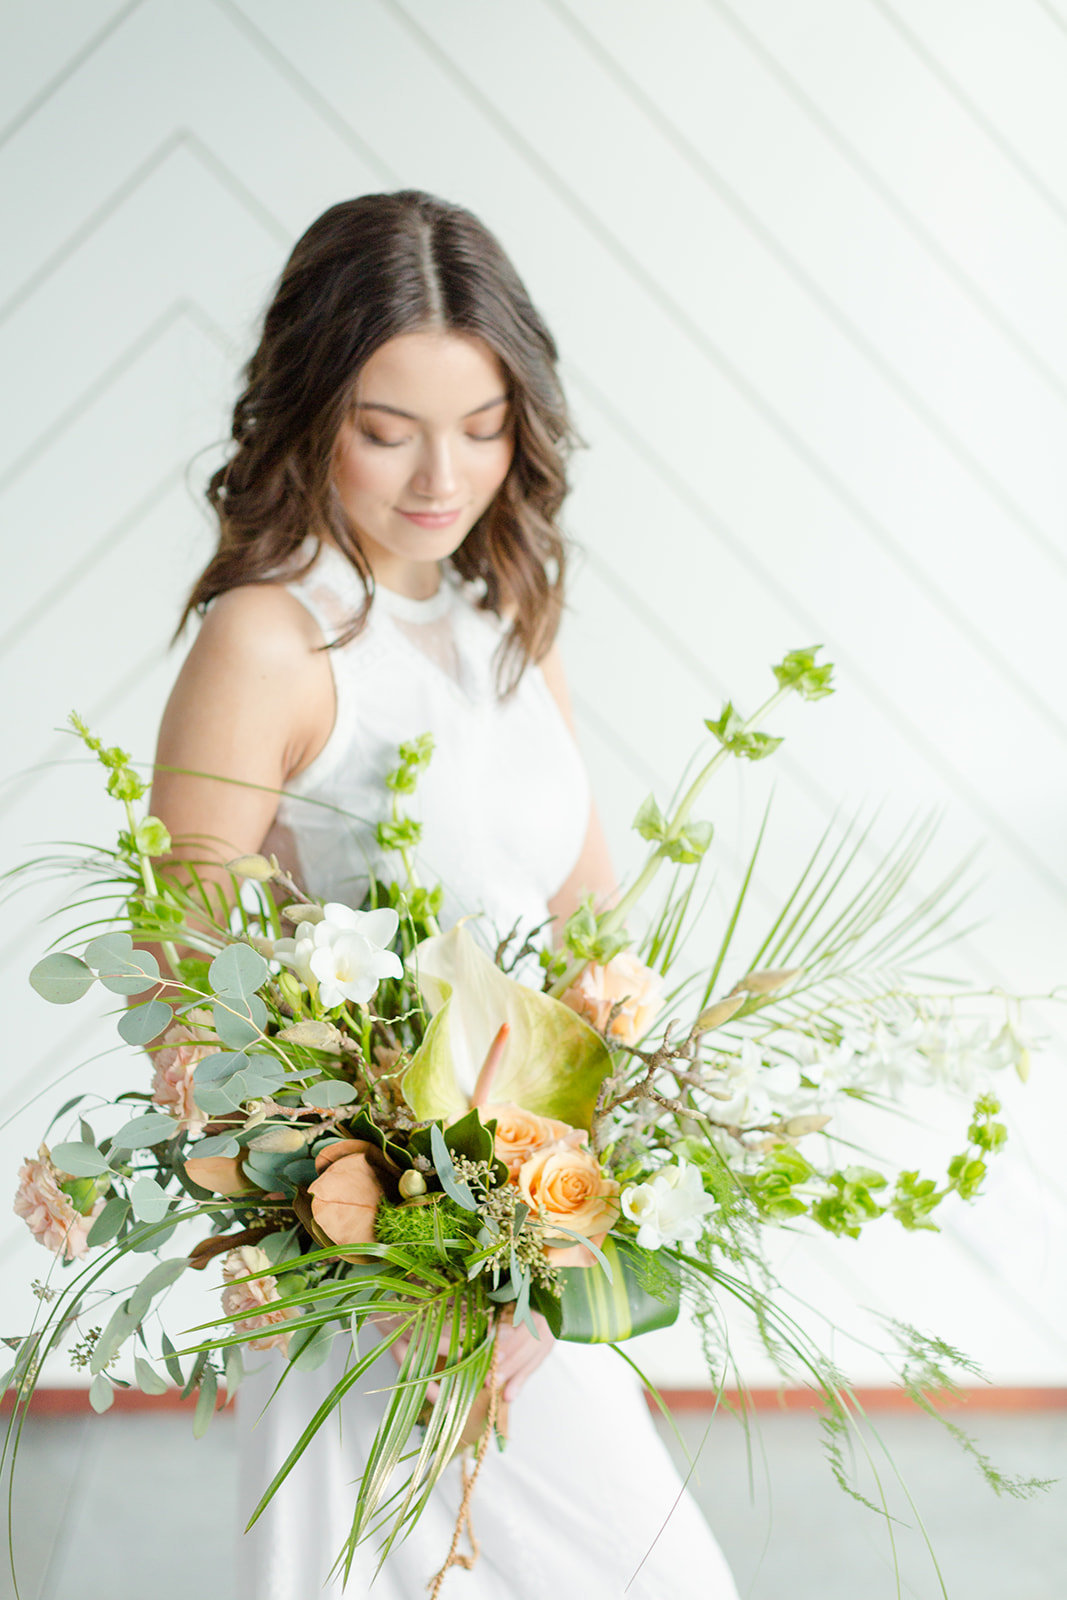 Oasis Bridal Inspiration at St. Irene's-2522_websize